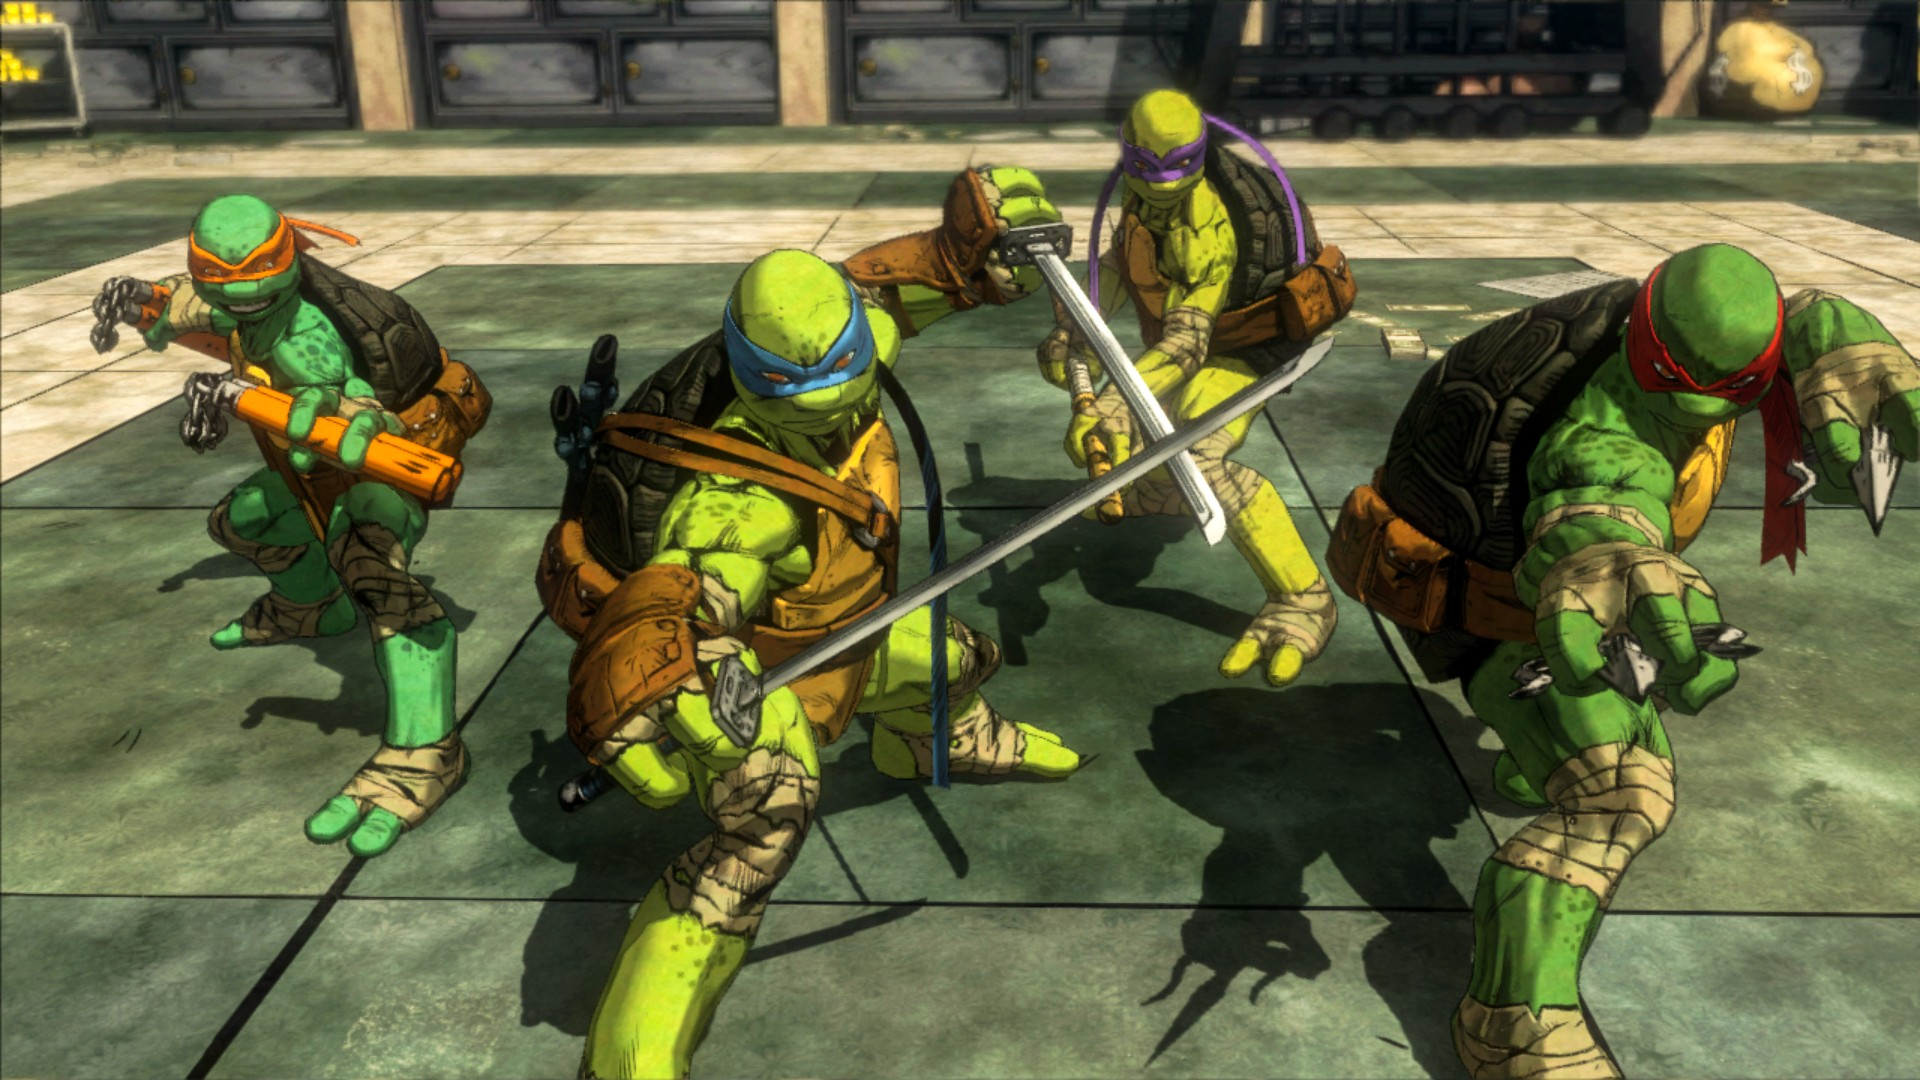 Teenage Mutant Ninja Turtles Episodes  TMNT Games